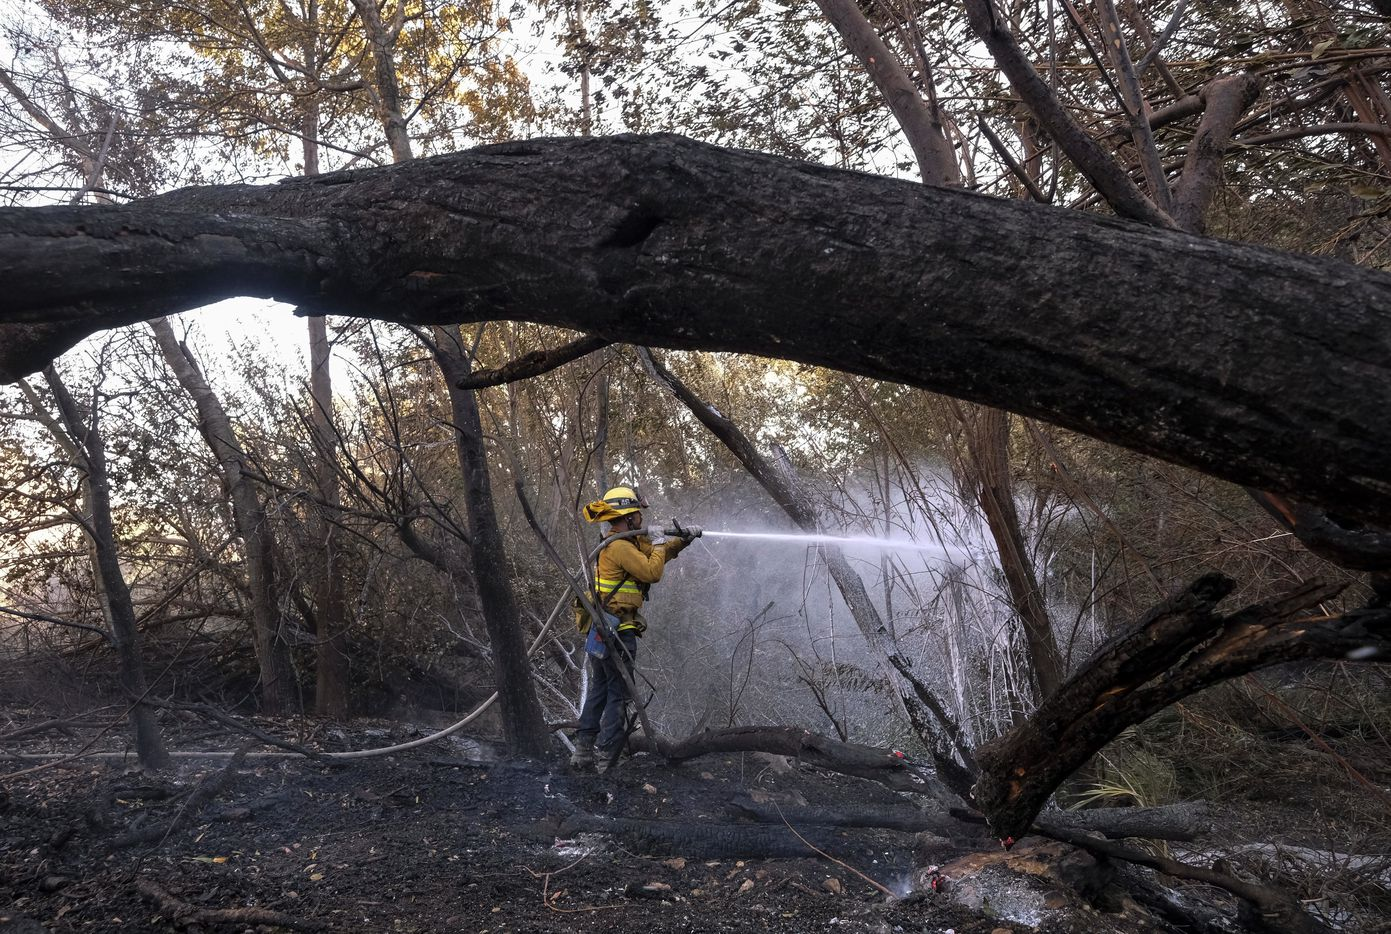 A firefighter sprays water on the remaining hot spots in an area in West Hills, Calif., on Nov. 11, 2018.